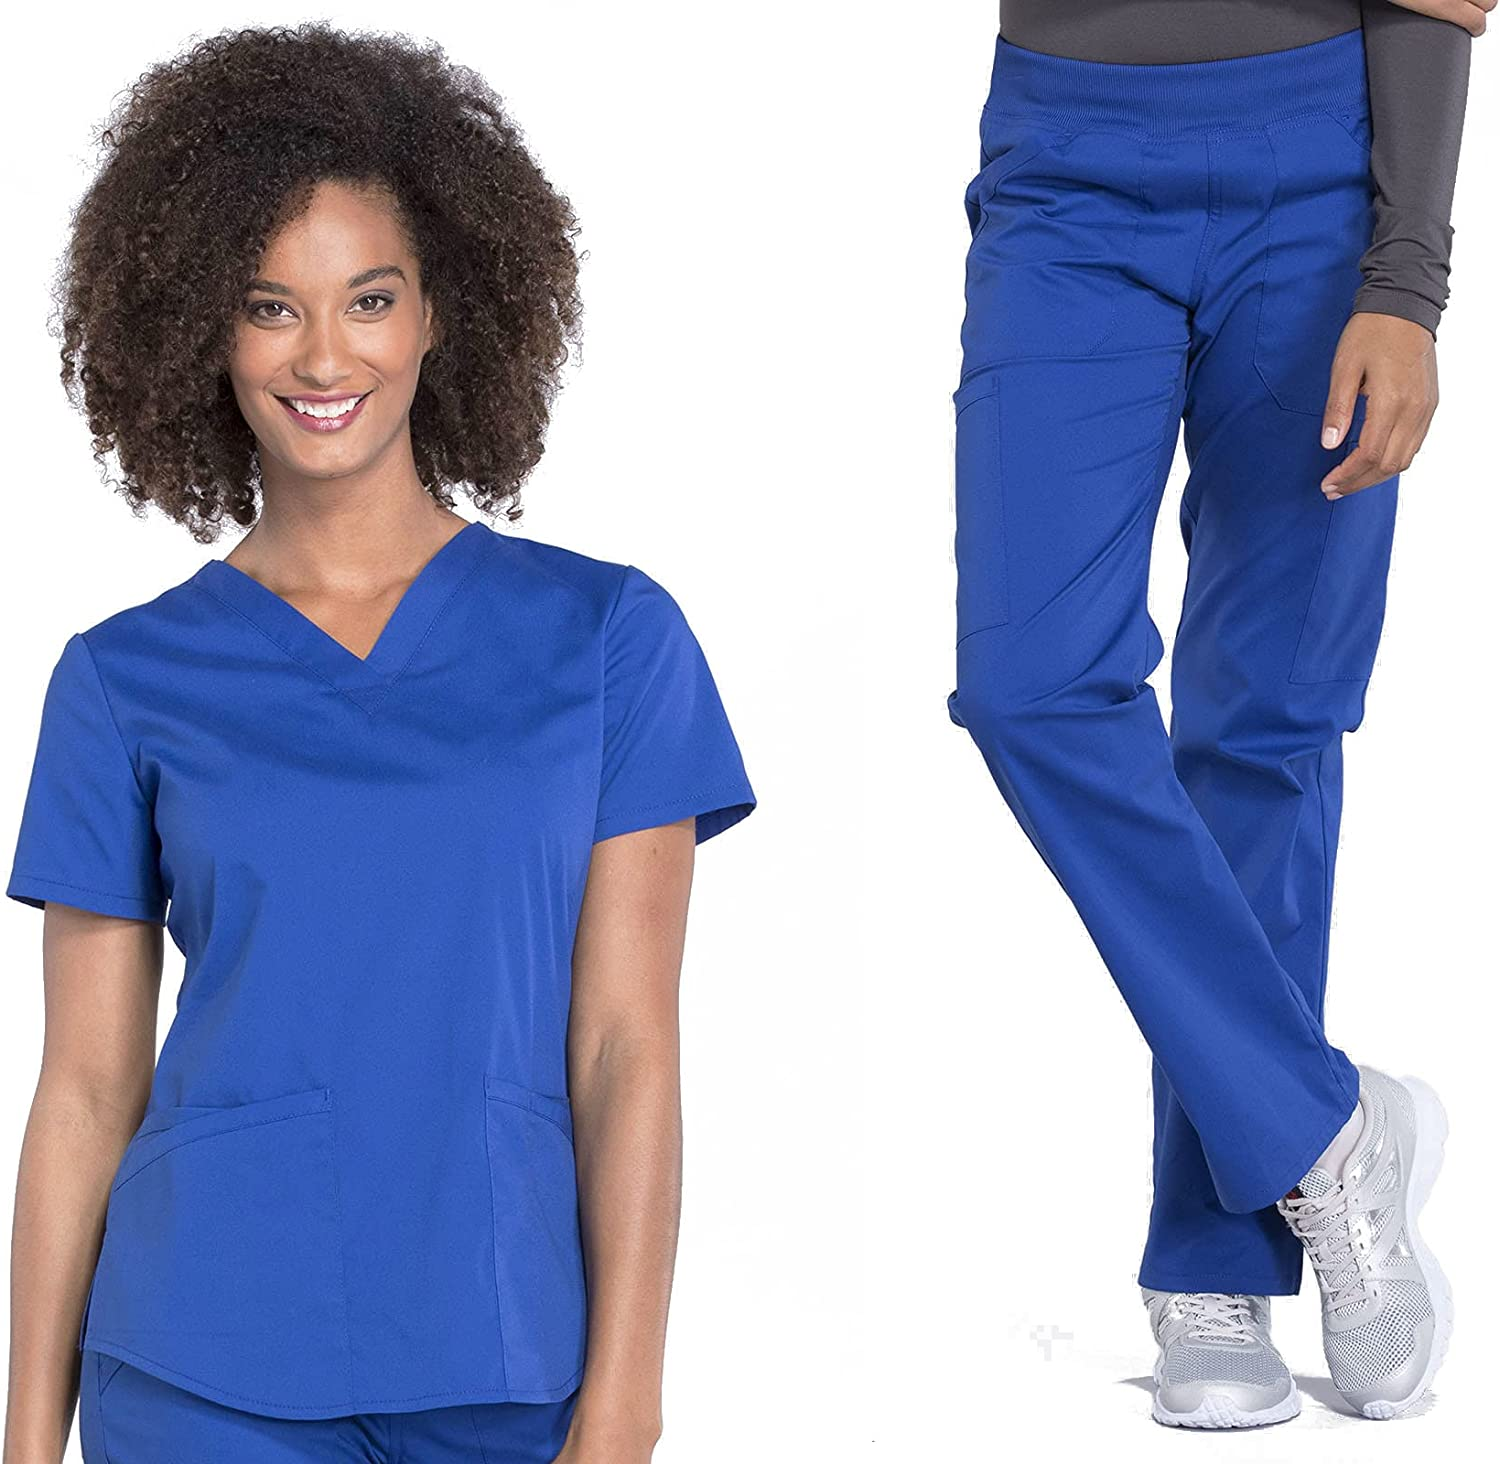 CHEROKEE Workwear Professionals Women's Top WW665 Women Limited Challenge the lowest price time cheap sale V-Neck